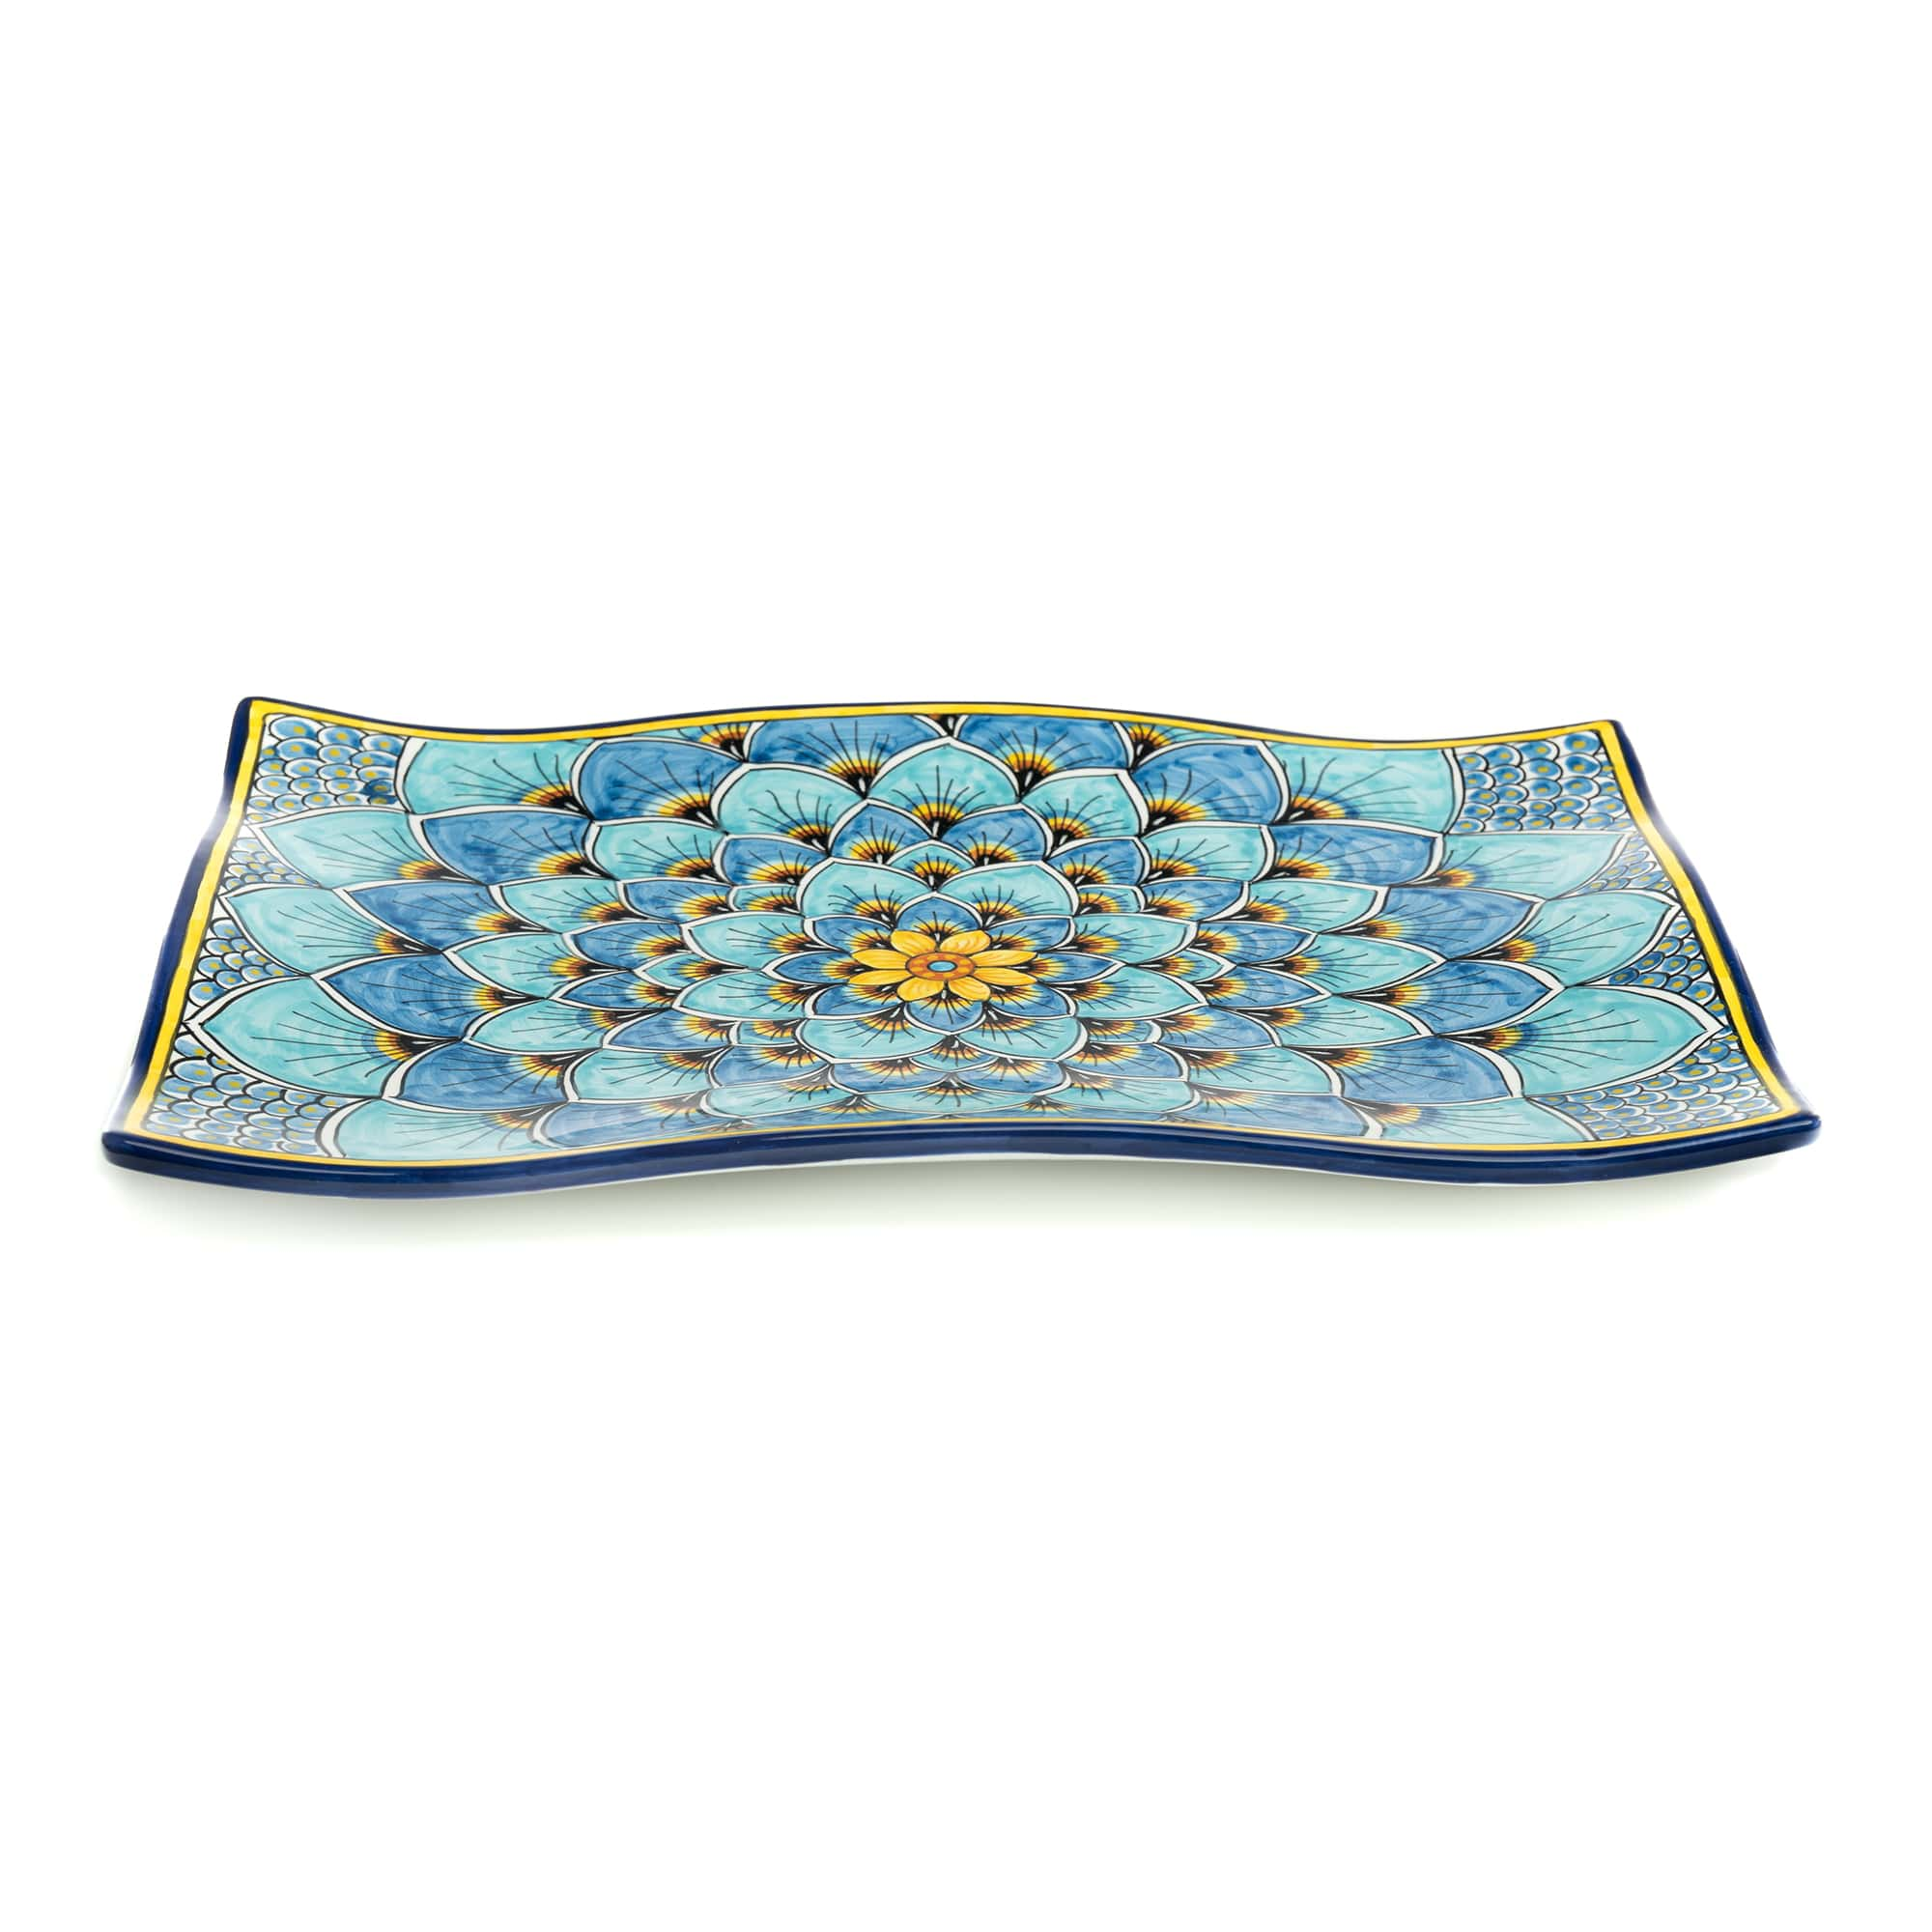 Geribi Wavy Platter (PG09) Blues Peacock Design